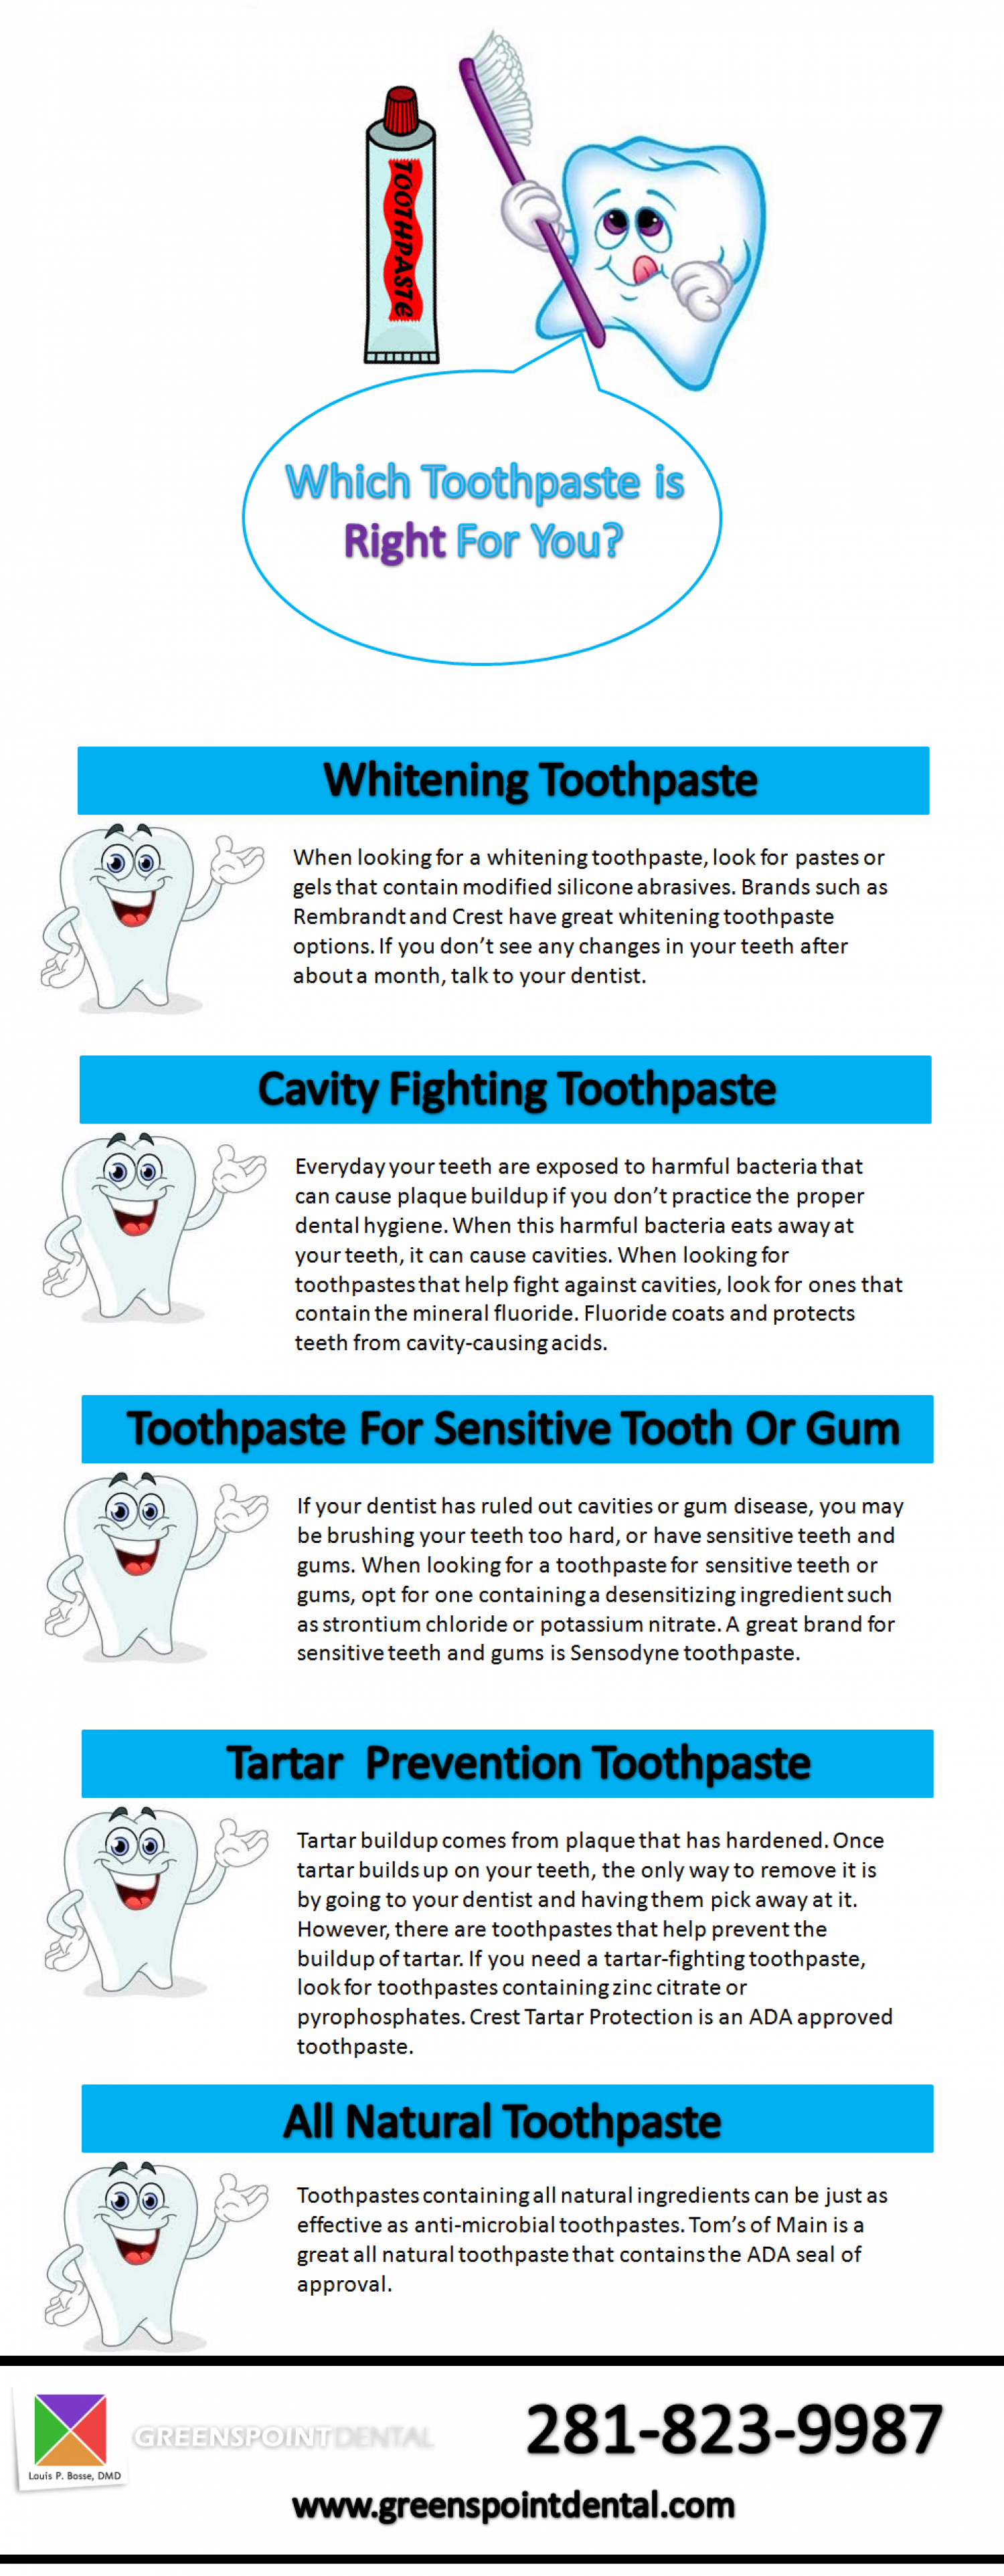 Which Toothpaste Is Right For You? Infographic